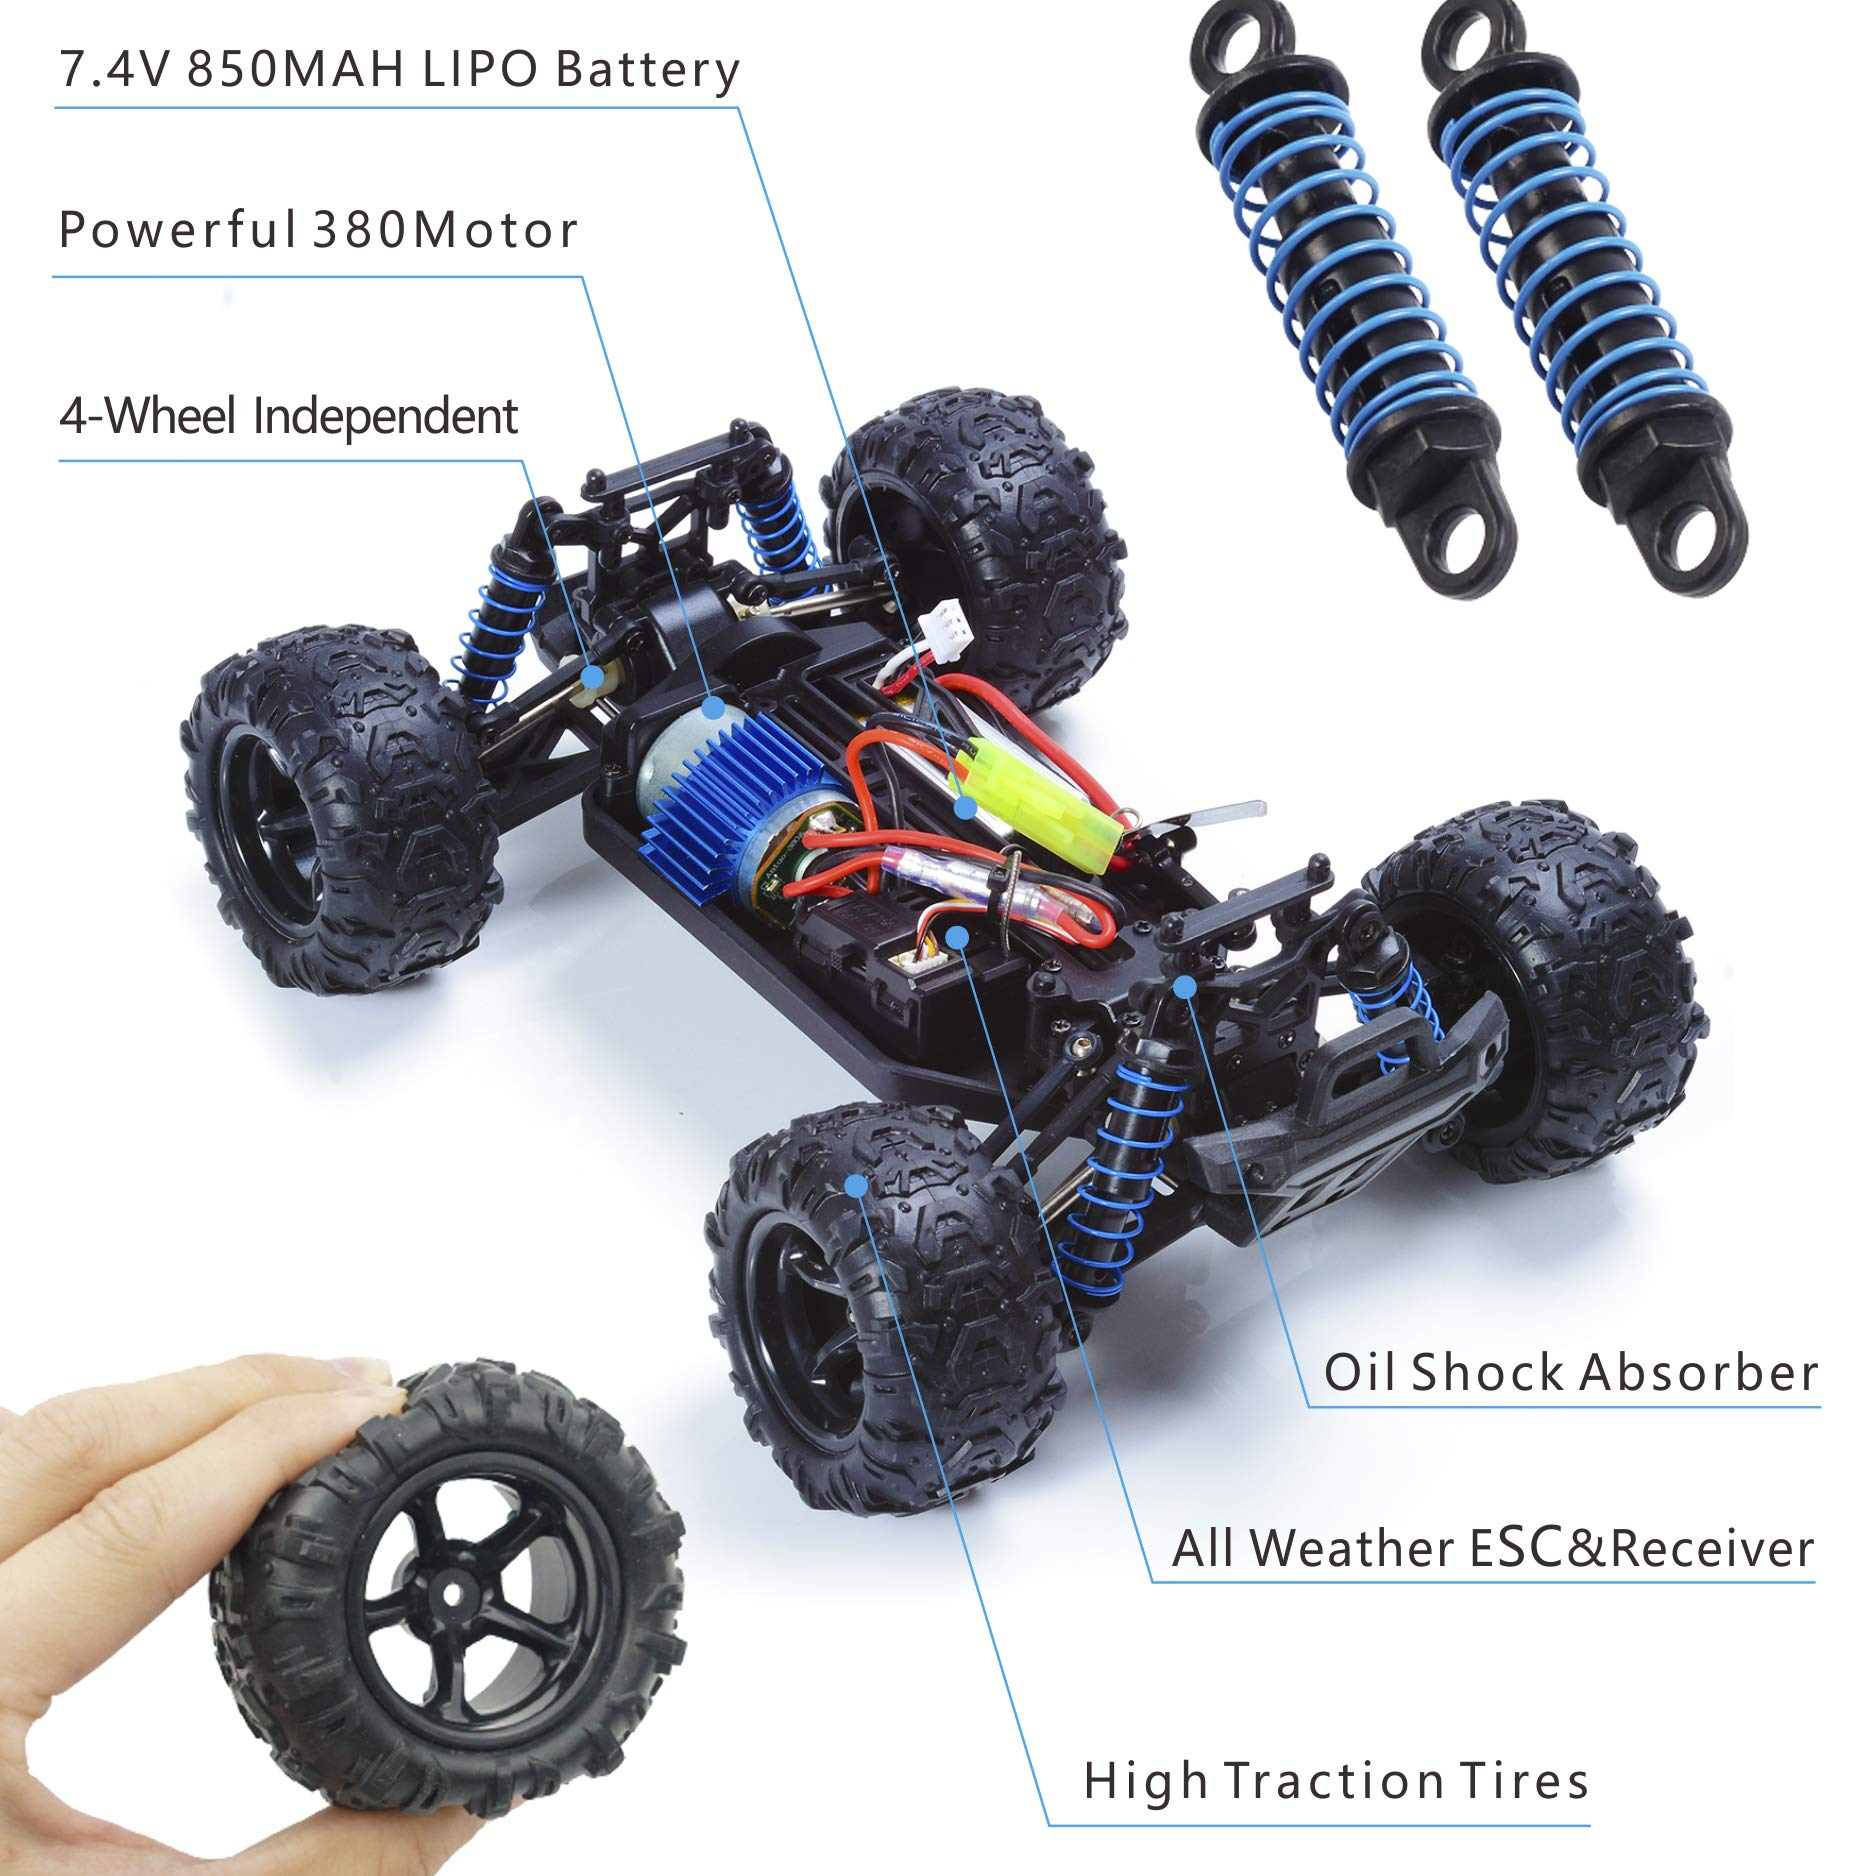 EXERCISE N PLAY RC Car, Remote Control Car, Terrain RC Cars, Electric Remote Control Off Road Monster Truck, 1:18 Scale 2.4Ghz Radio 4WD Fast 30+ MPH RC Car, with 2 Rechargeable Batteries by EXERCISE N PLAY (Image #2)